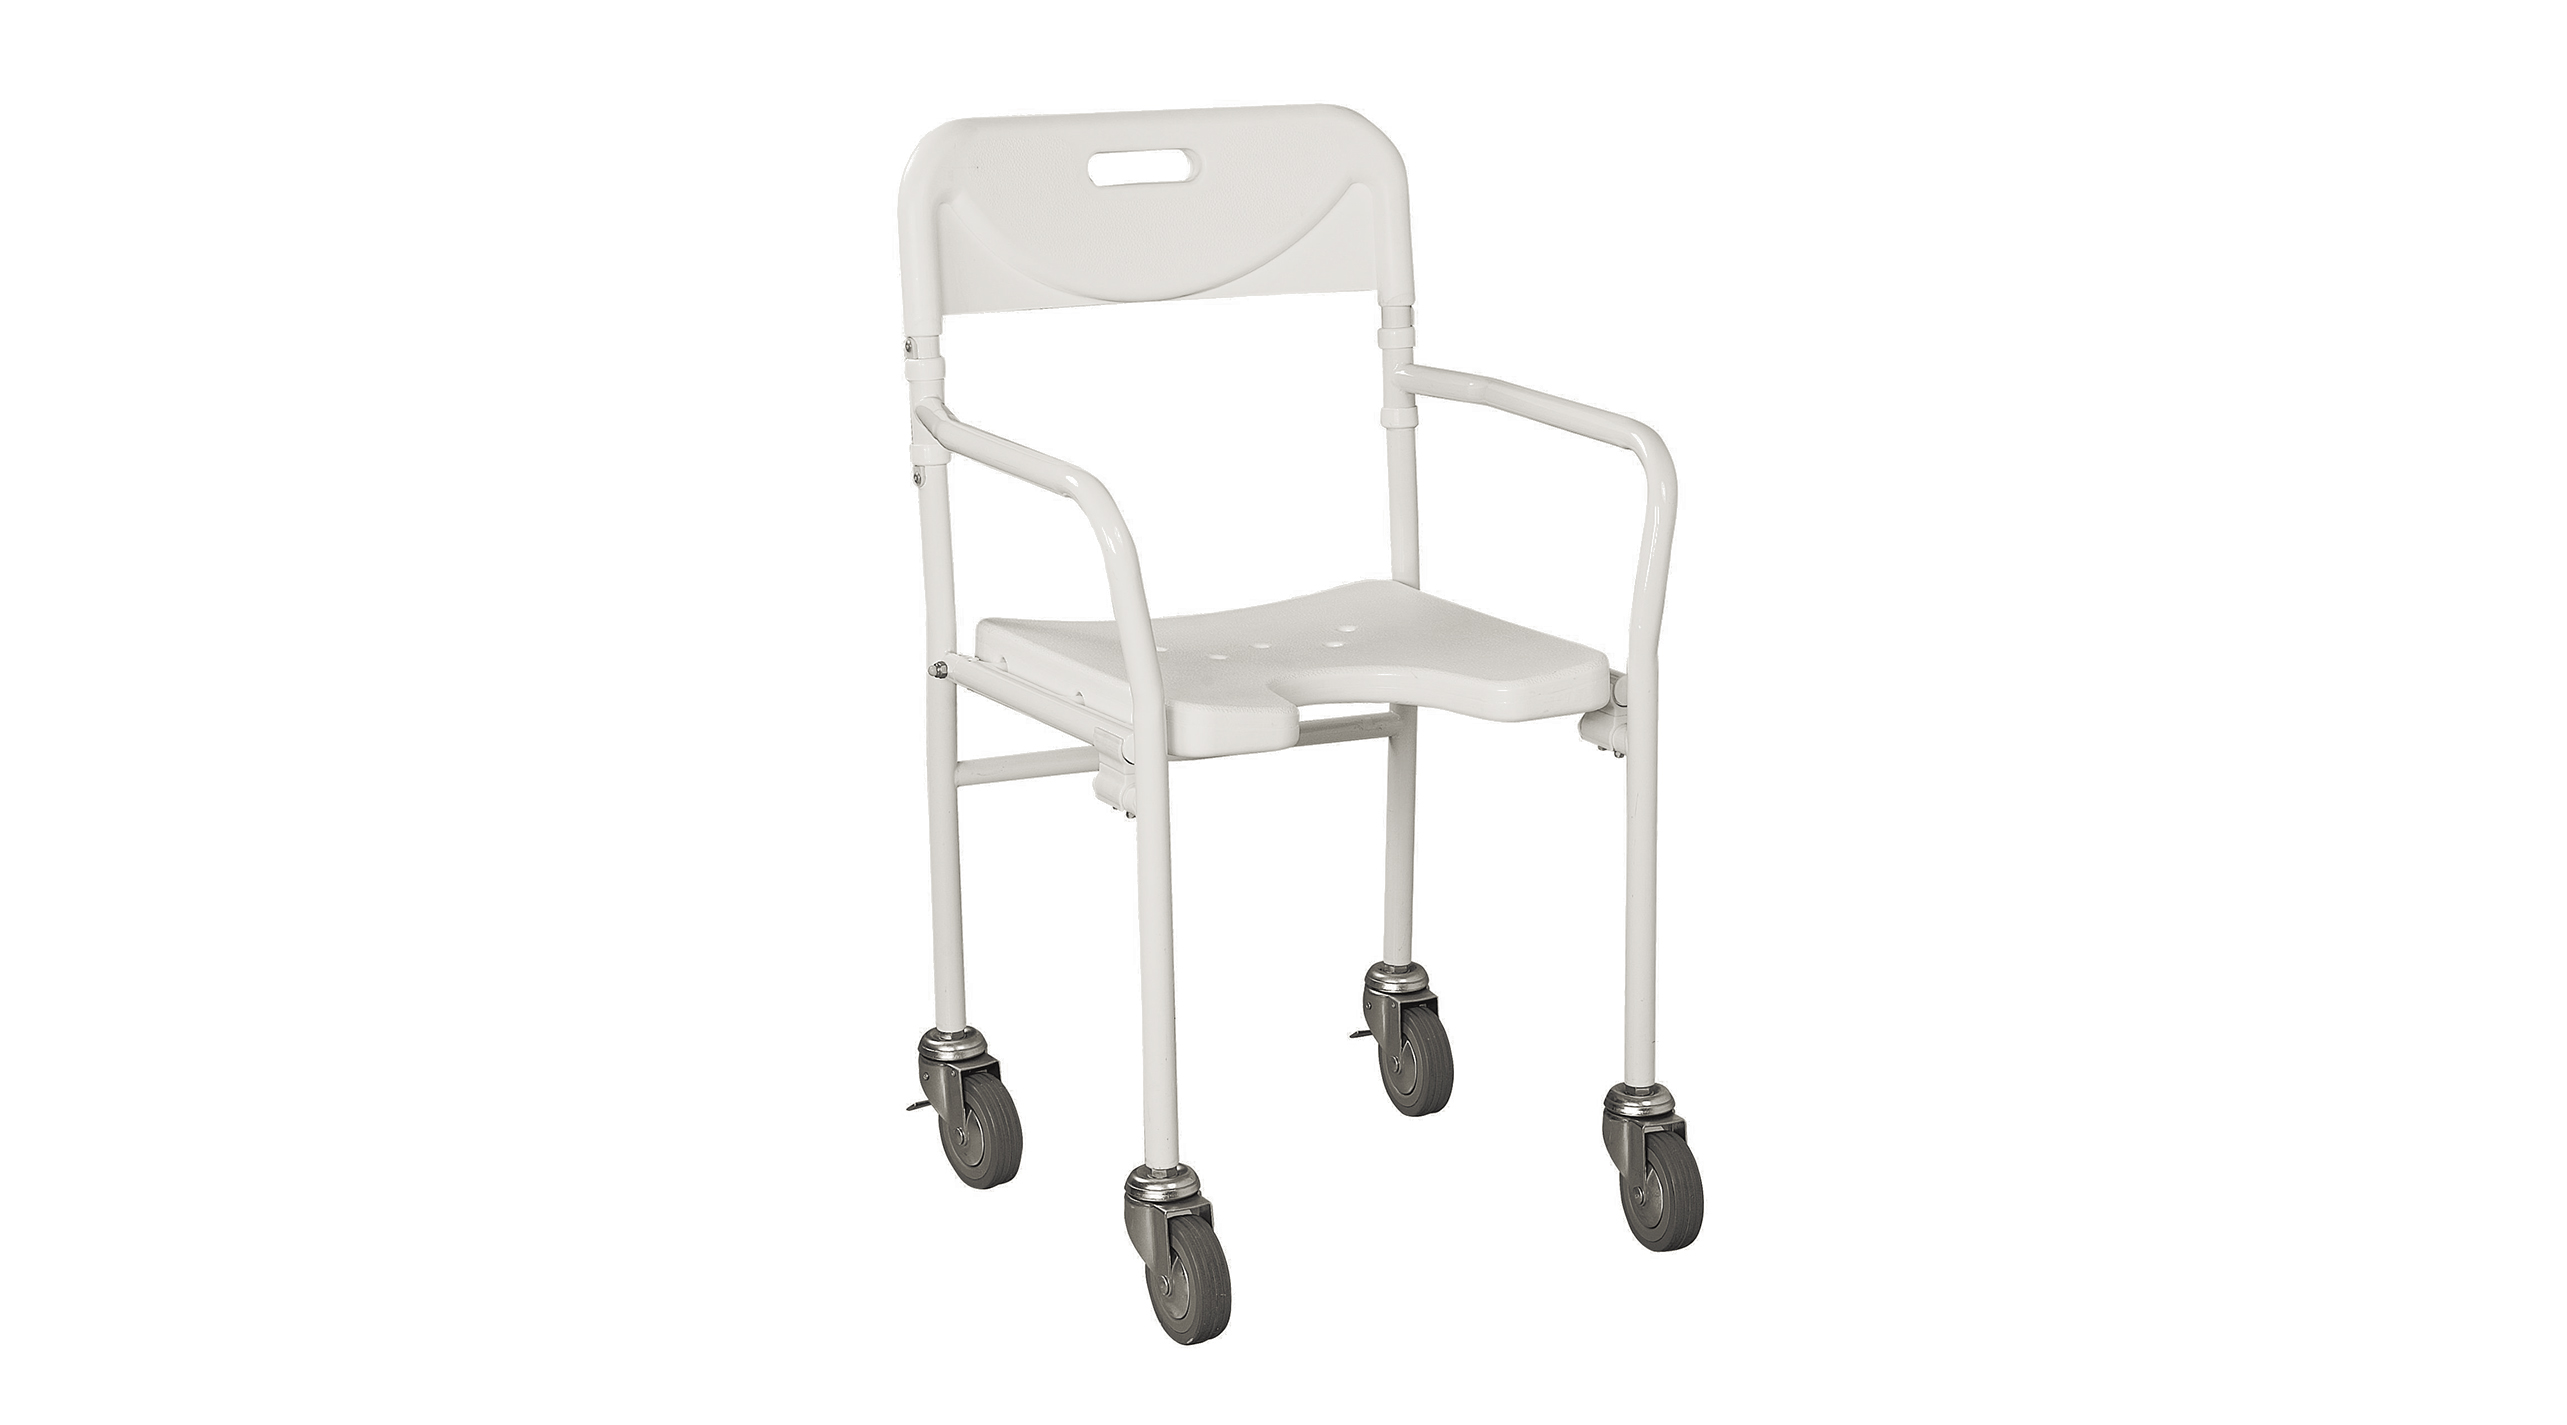 shower chair for elderly on exercises medical bed rails foldable hospital